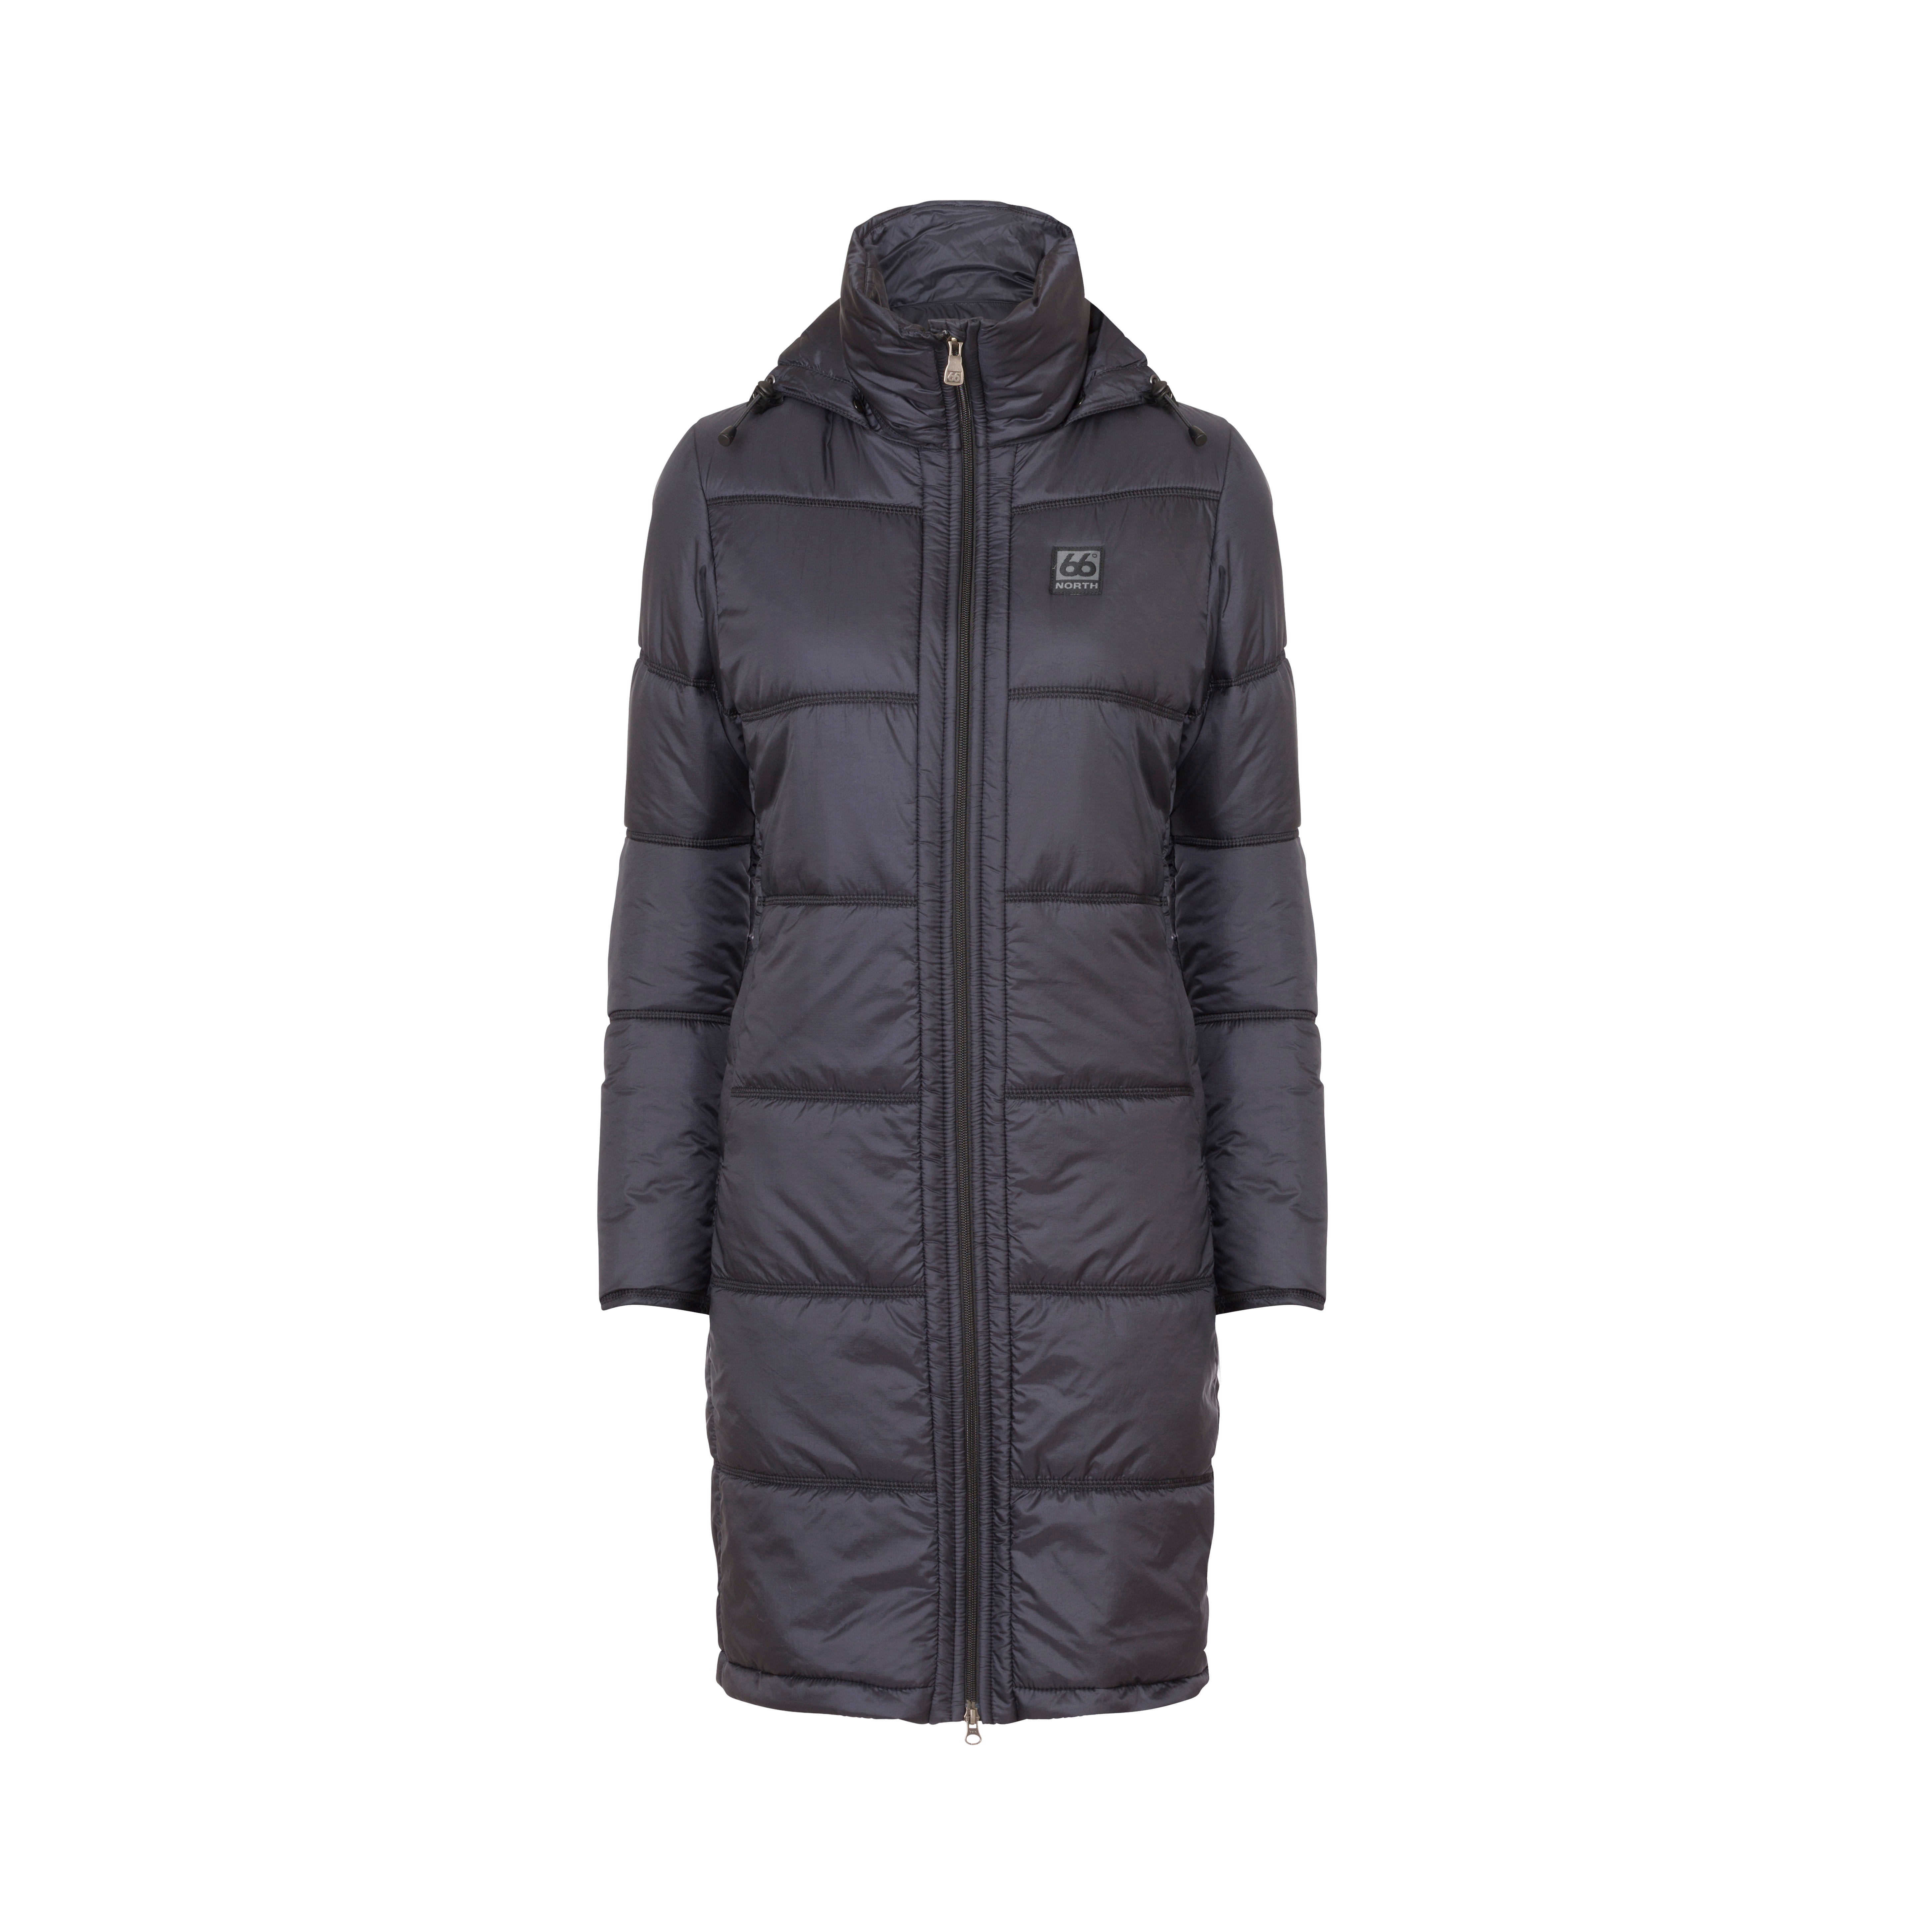 Kjøp 66 North Langjokull Women's Primaloft Long Coat fra